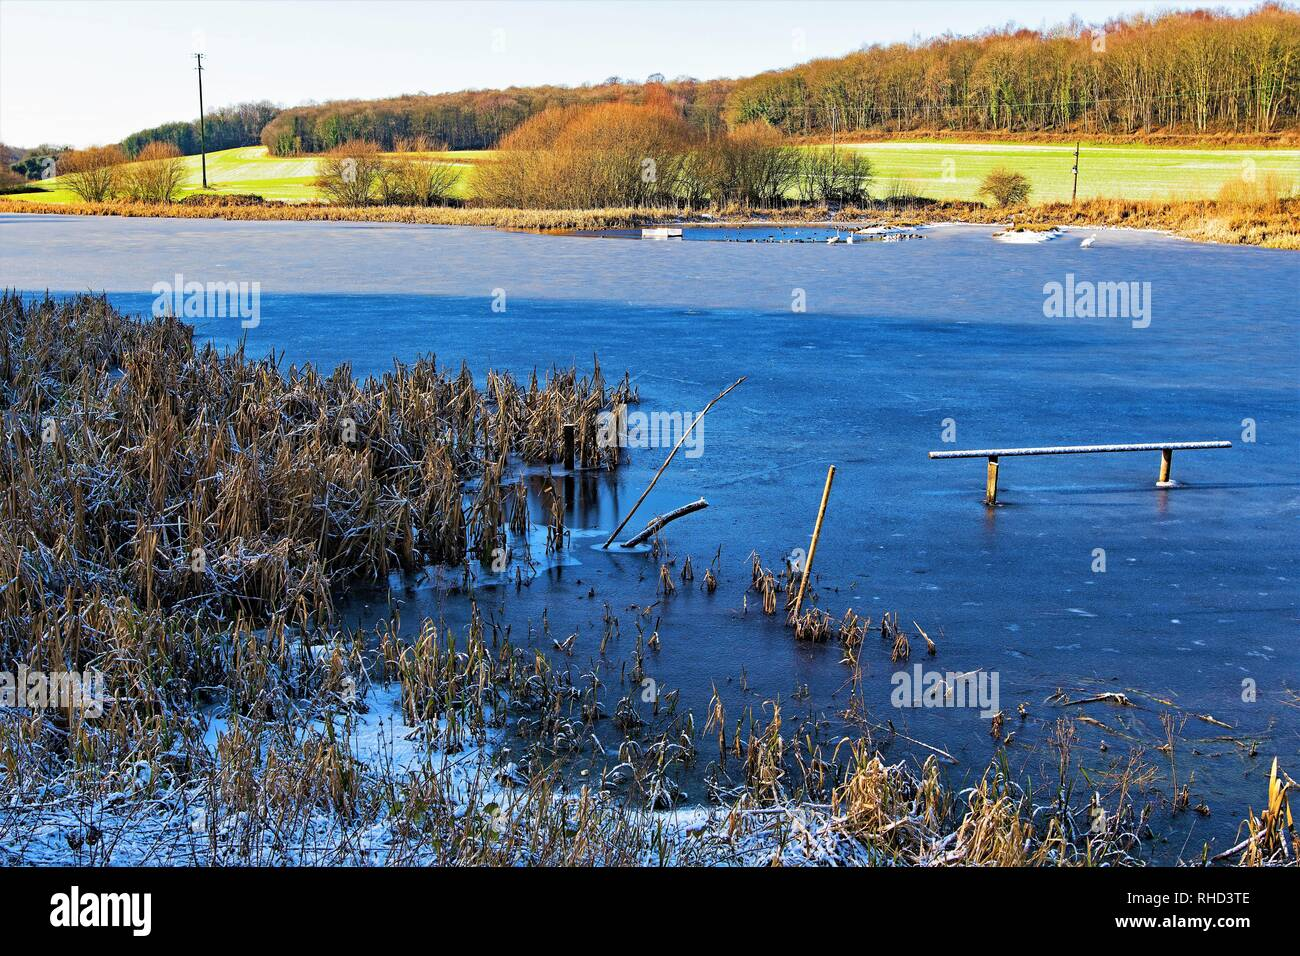 Taken to capture Sprotbrough Flash, completely frozen over in February, 2019. - Stock Image